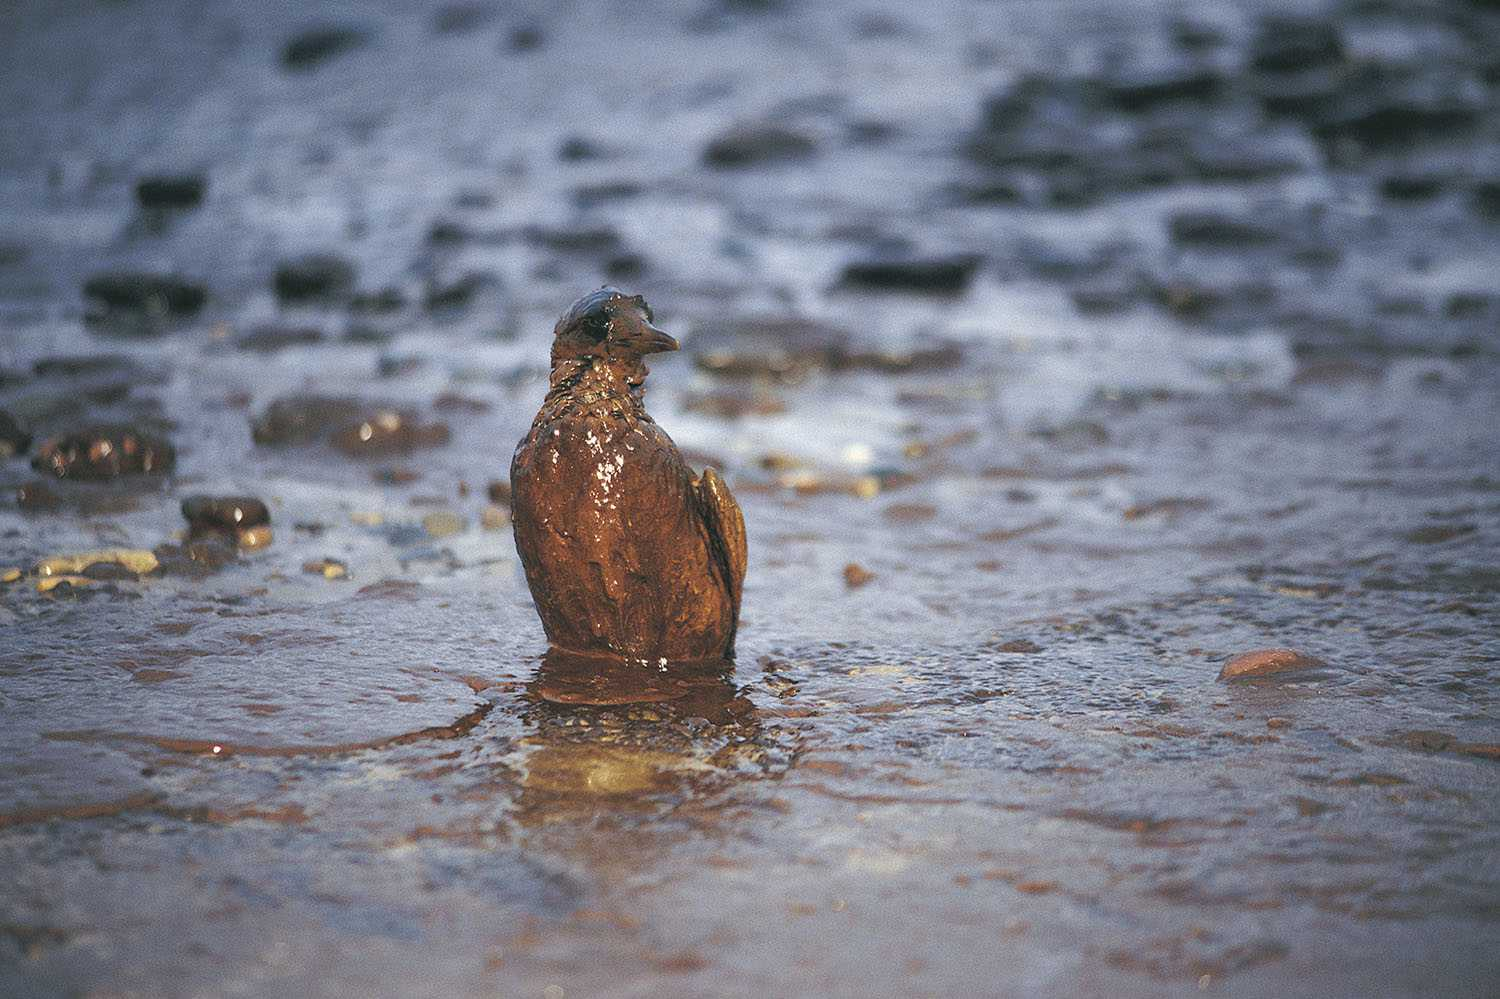 Oiled Guillimot After Empress Oil Spill, West Wales